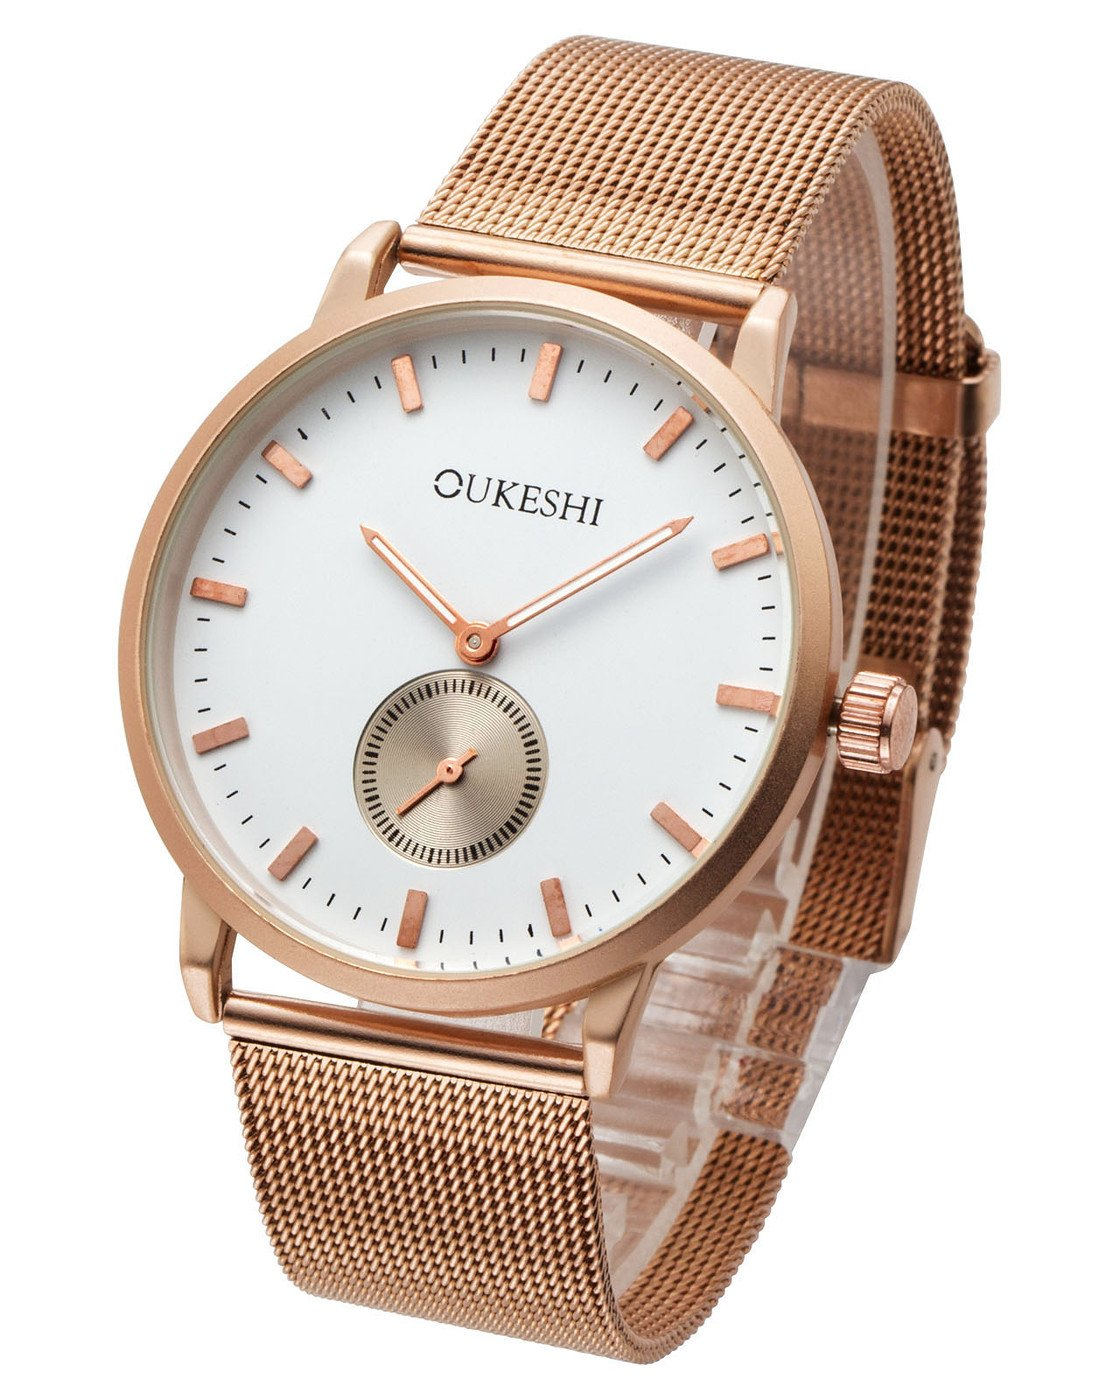 Top Plaza Unisex Elegant Simple Rose Gold Tone Milanese Magnetic Mesh Alloy Band Second Dial Big Face Analog Quartz Watch 30M Waterproof(White)